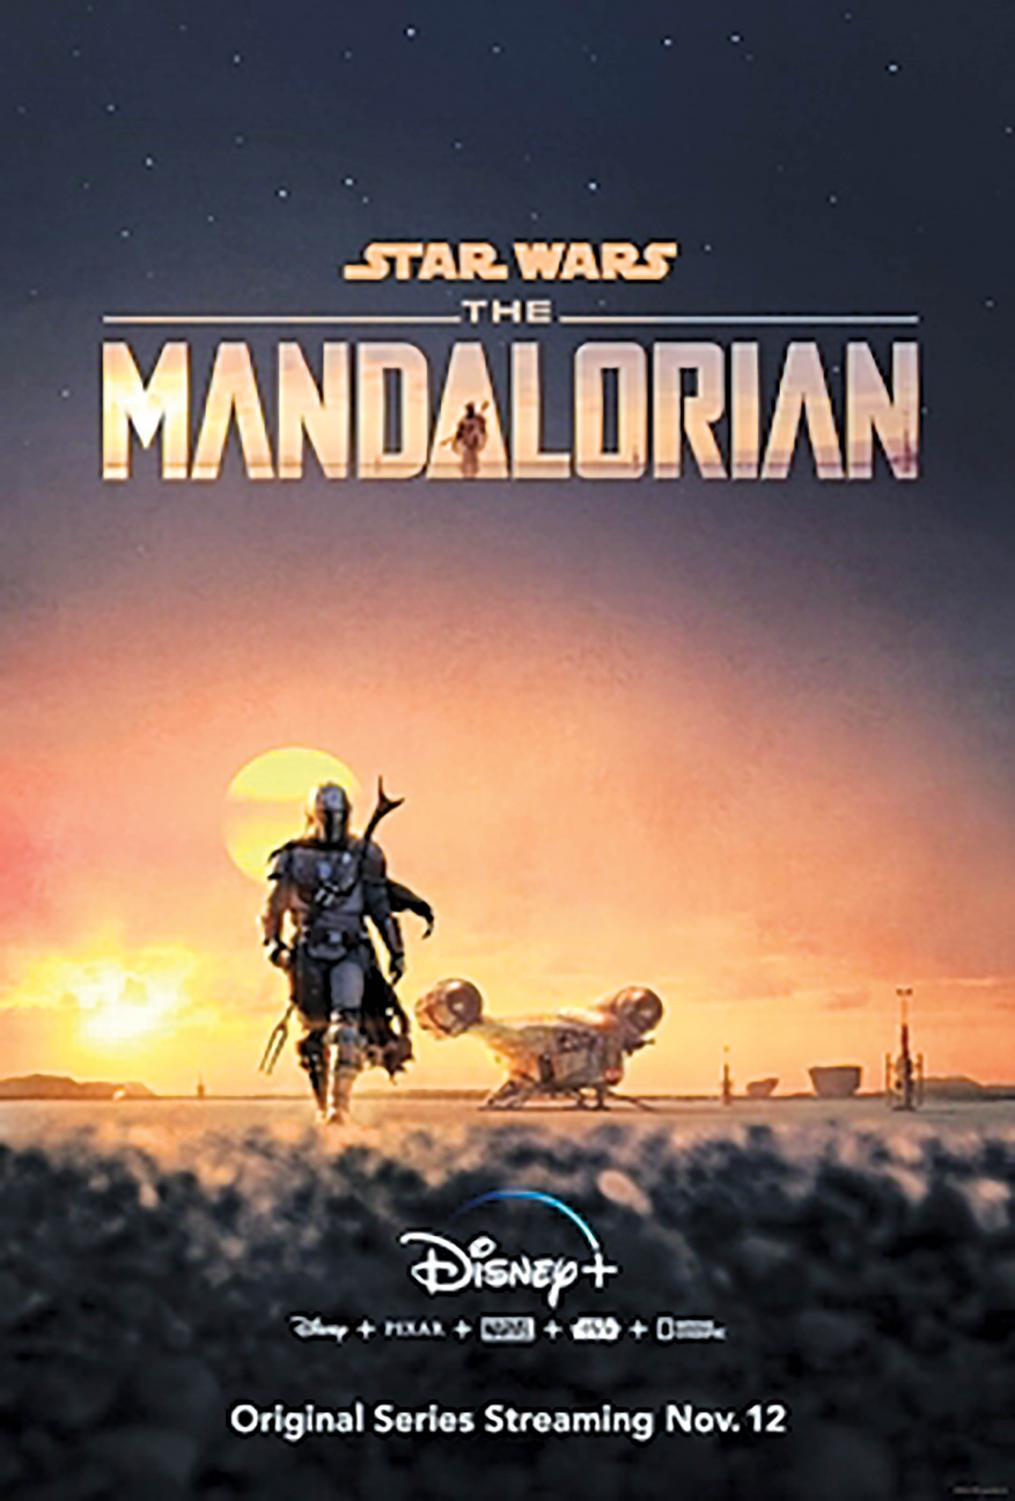 'The Mandalorian' was announced in November of 2017 as an untitled 'Star Wars' series. The Mandalorian race is a fan favorite character since Boba Fett donned the stolen armor in 'The Empire Strikes Back.'